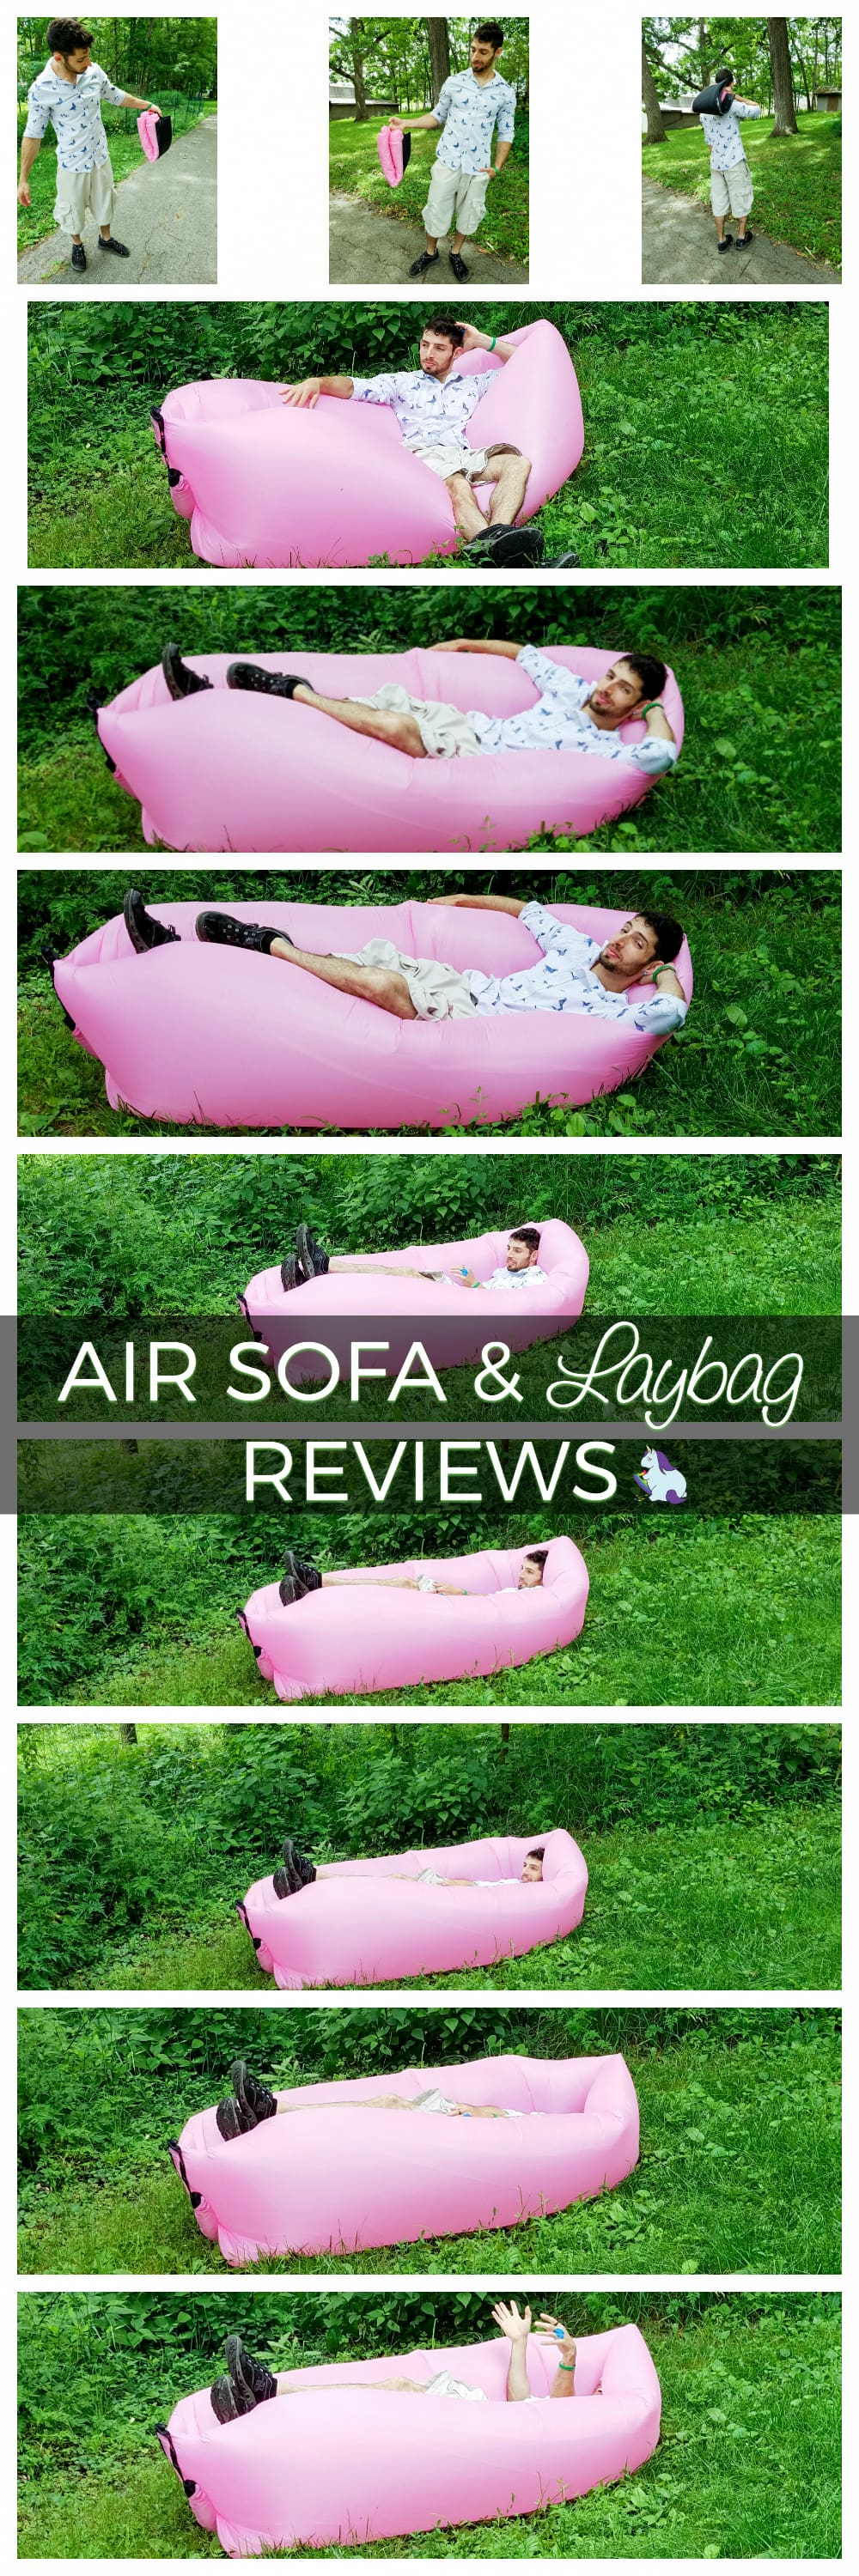 Air Sofa Inflatable Outdoor Lounger and Laybag Reviews